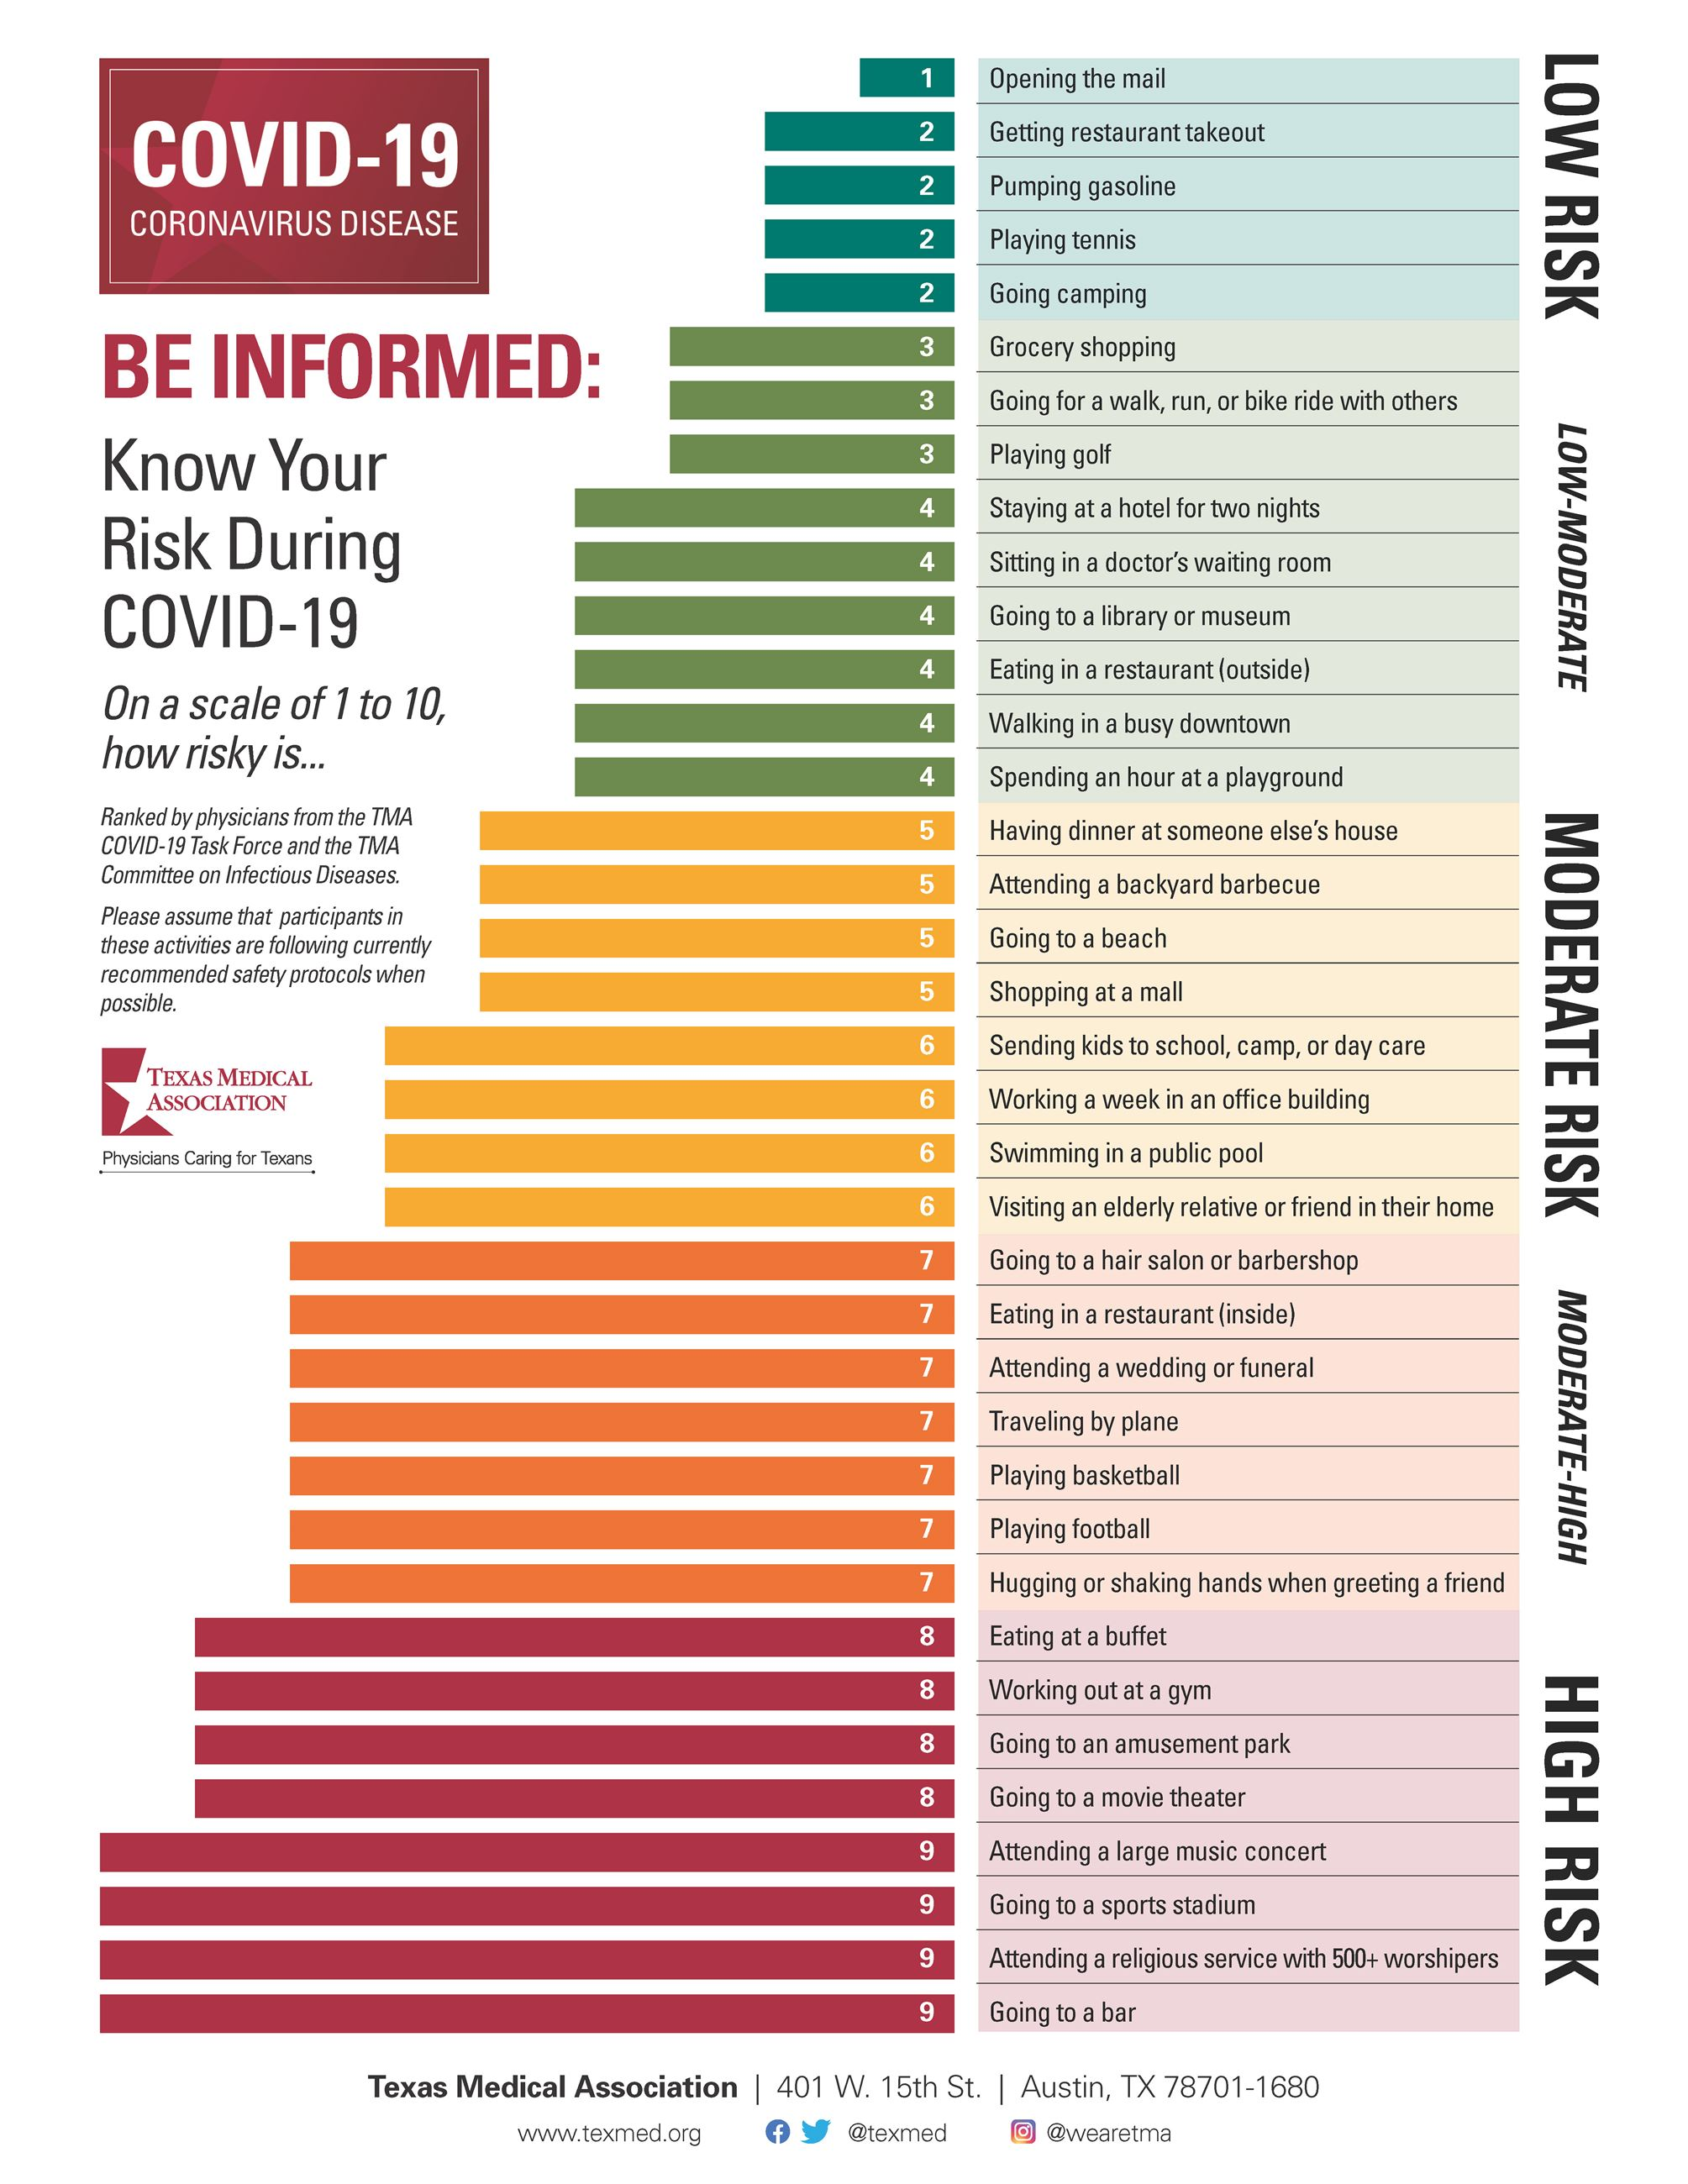 Know Your Risk Chart